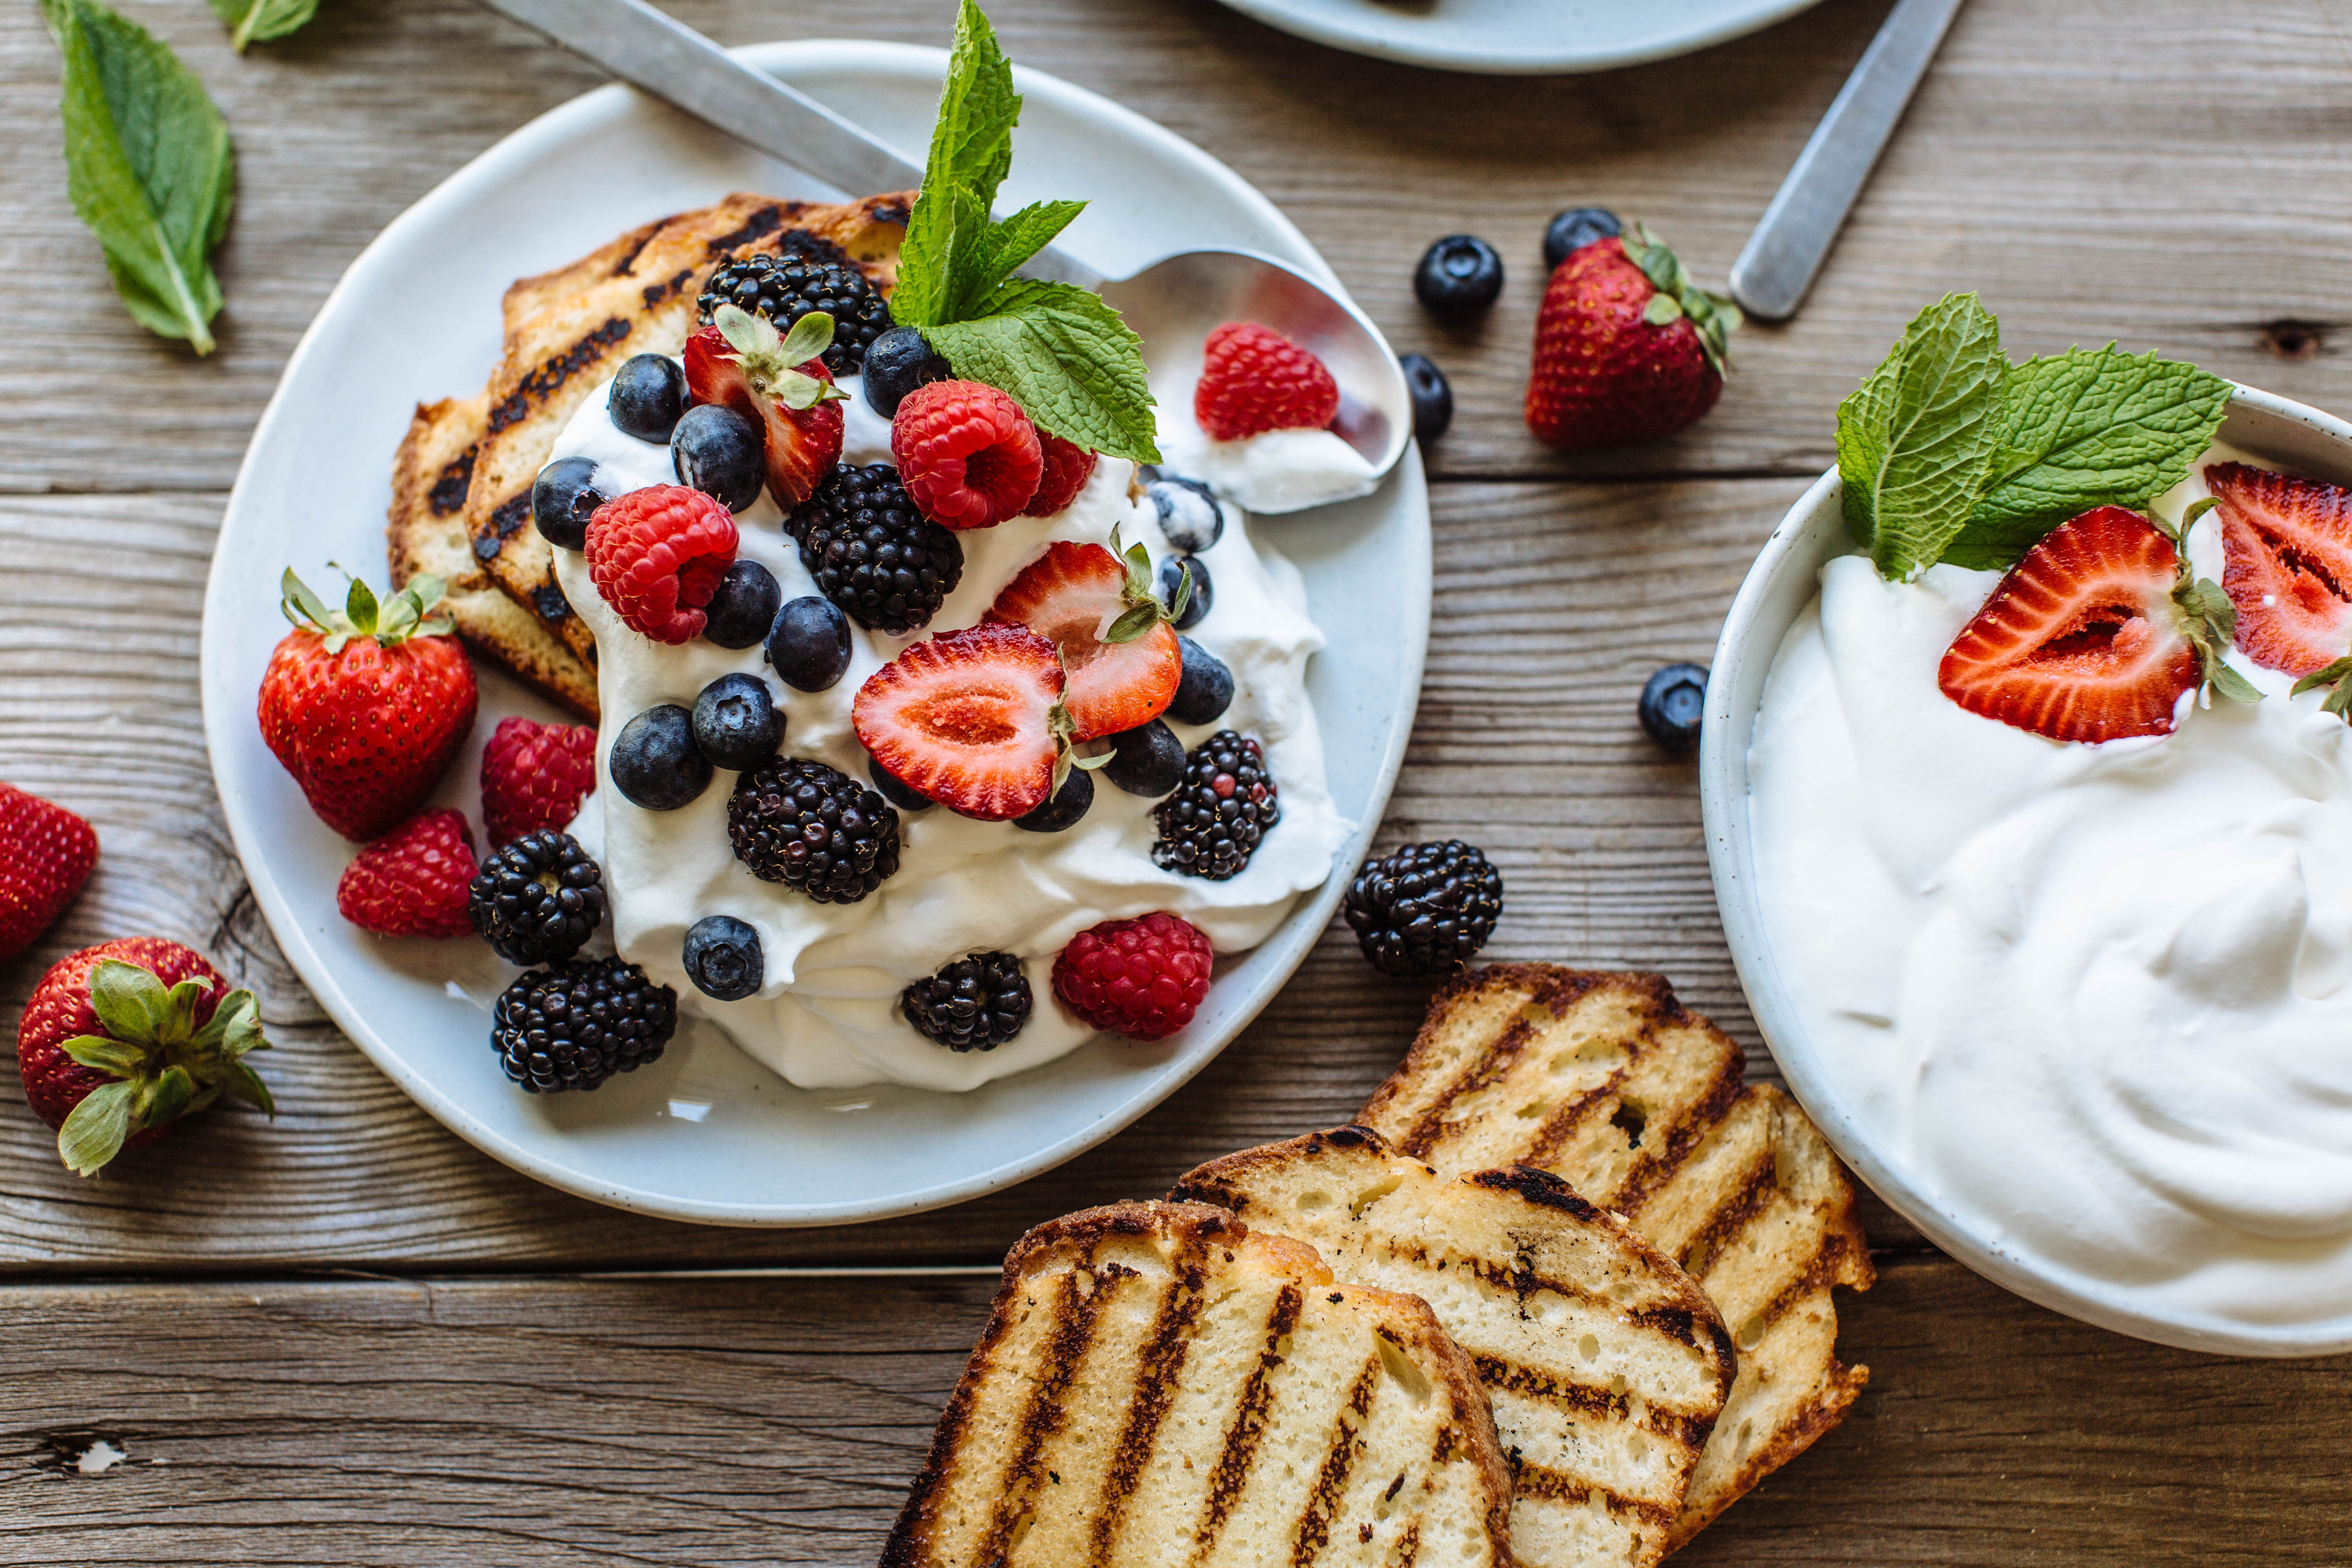 Grilled Pound Cake with Macerated Berries & Whipped Cream